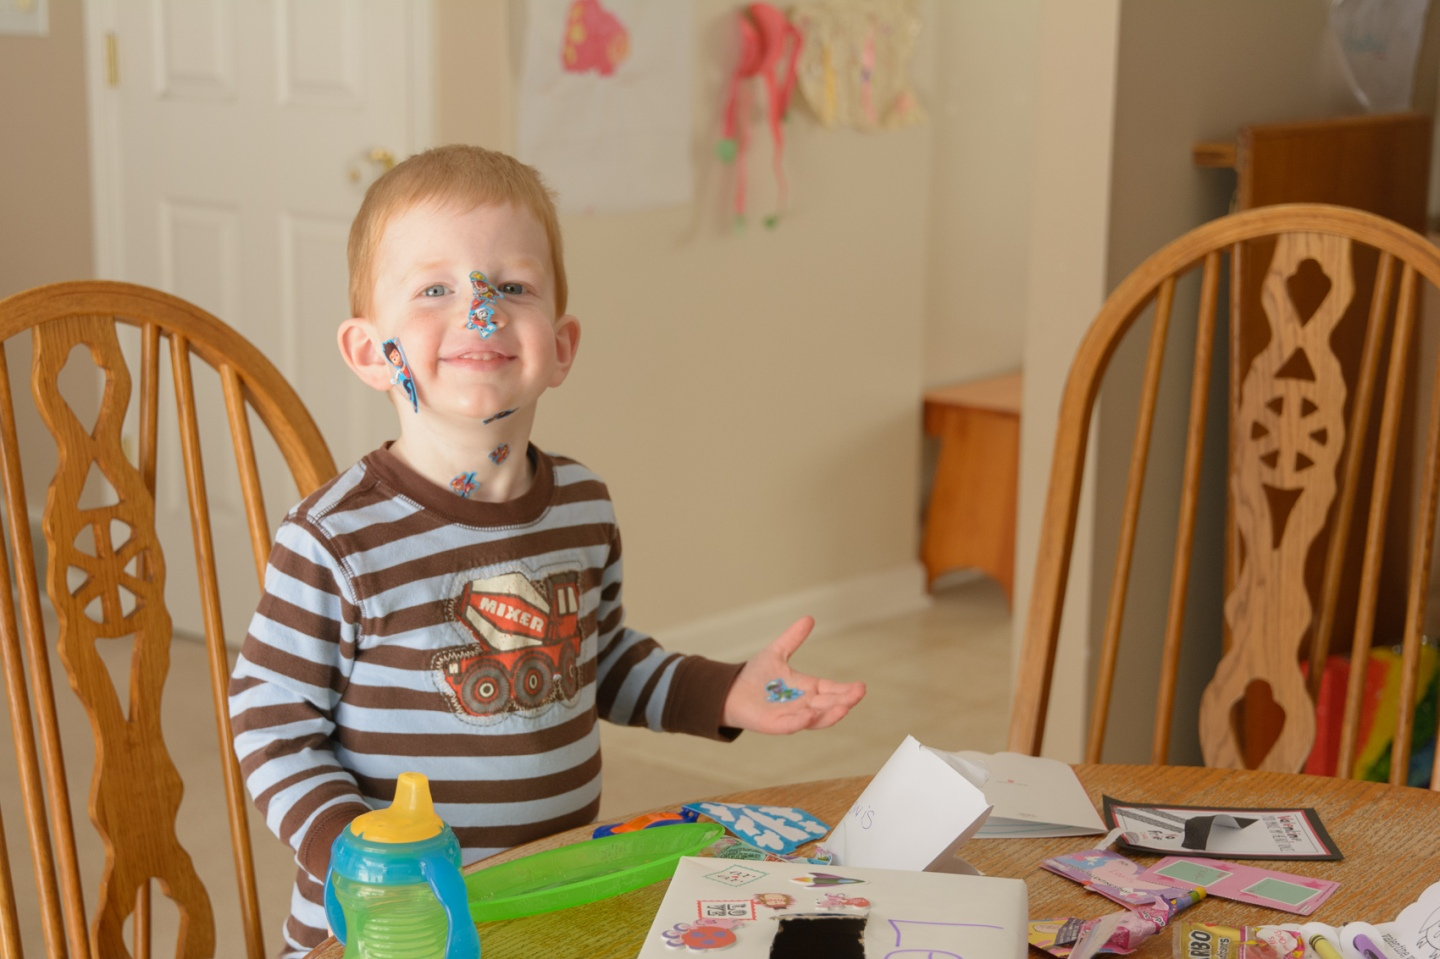 Preschooler with stickers on his face